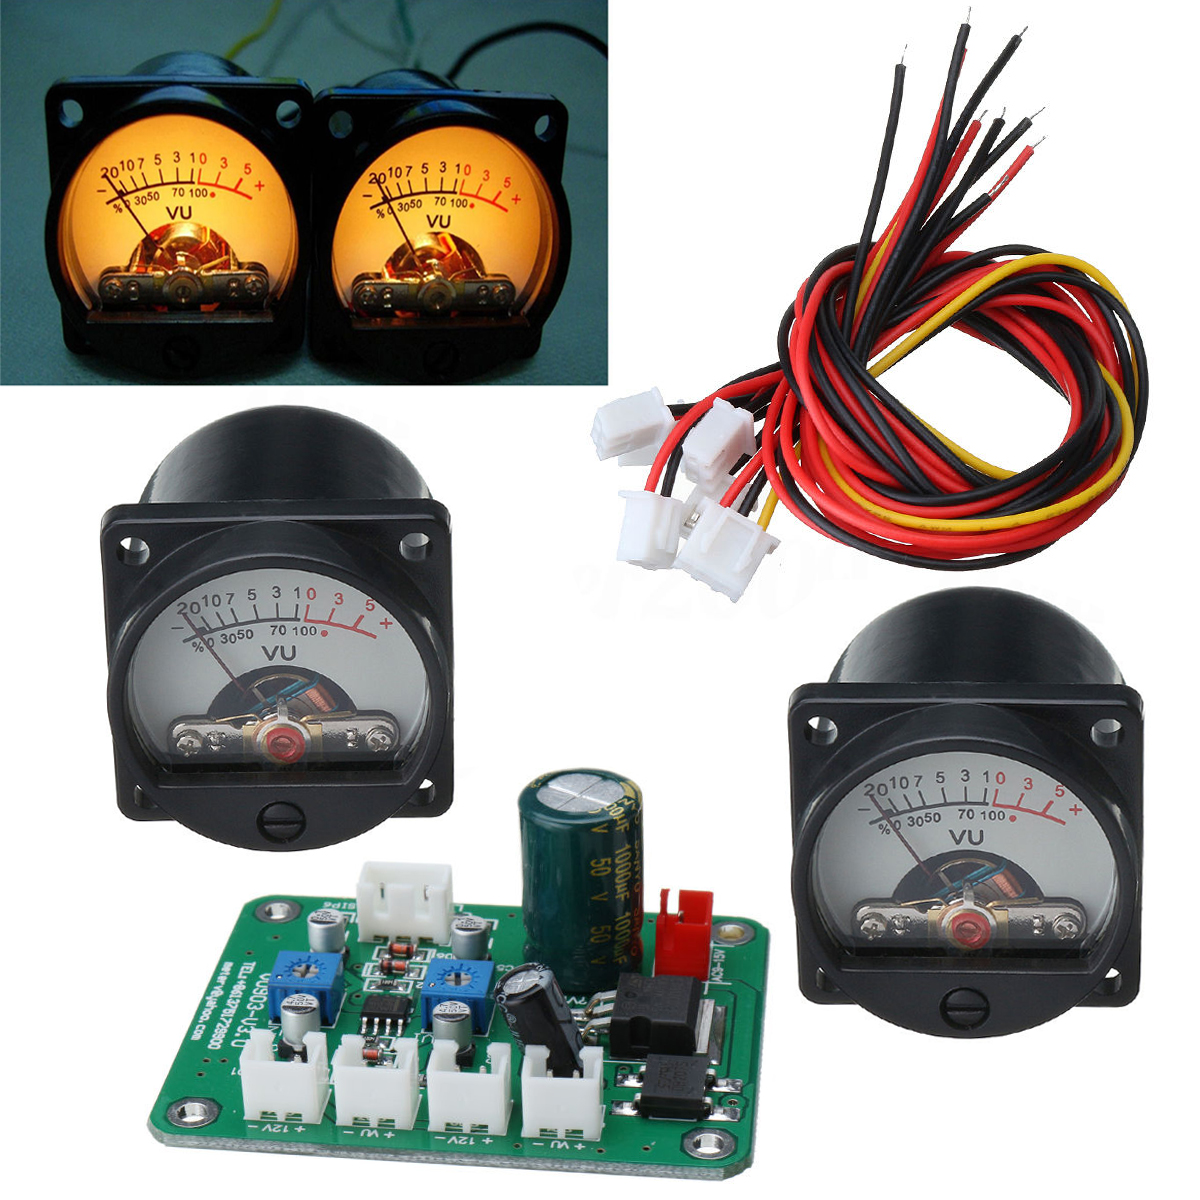 2pcs 10-12V Analog VU Panel Meter 500UA Warm Back Light Recording Level Meter + Durable Driver Module Board + Cable Mayitr